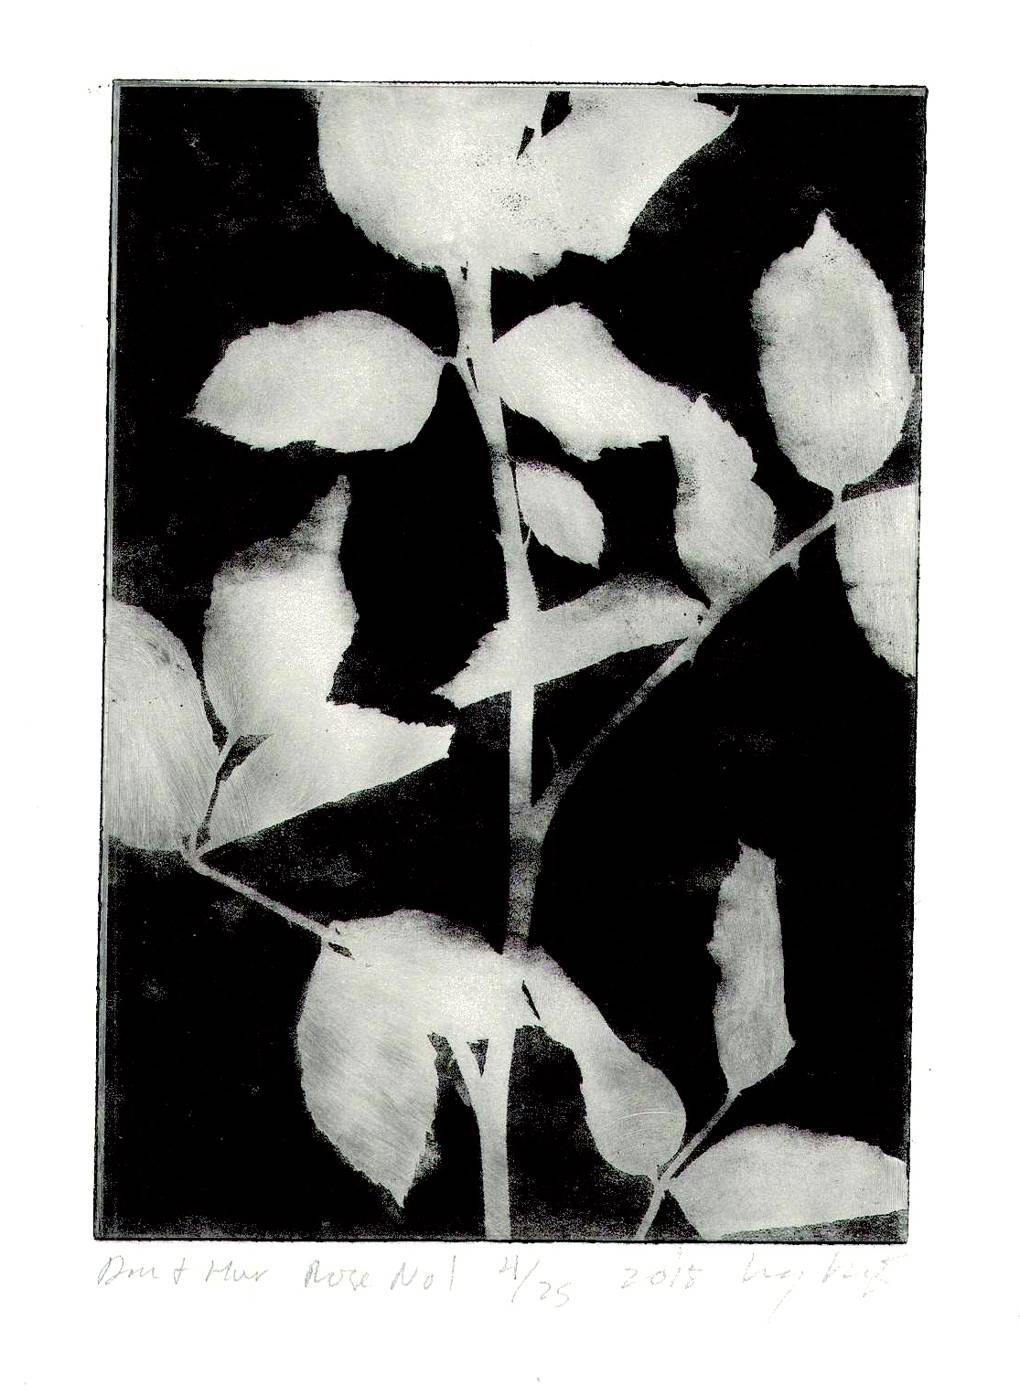 Lucy Augé has produced a collection of ethereally lovely etchings from Dan Pearson's garden